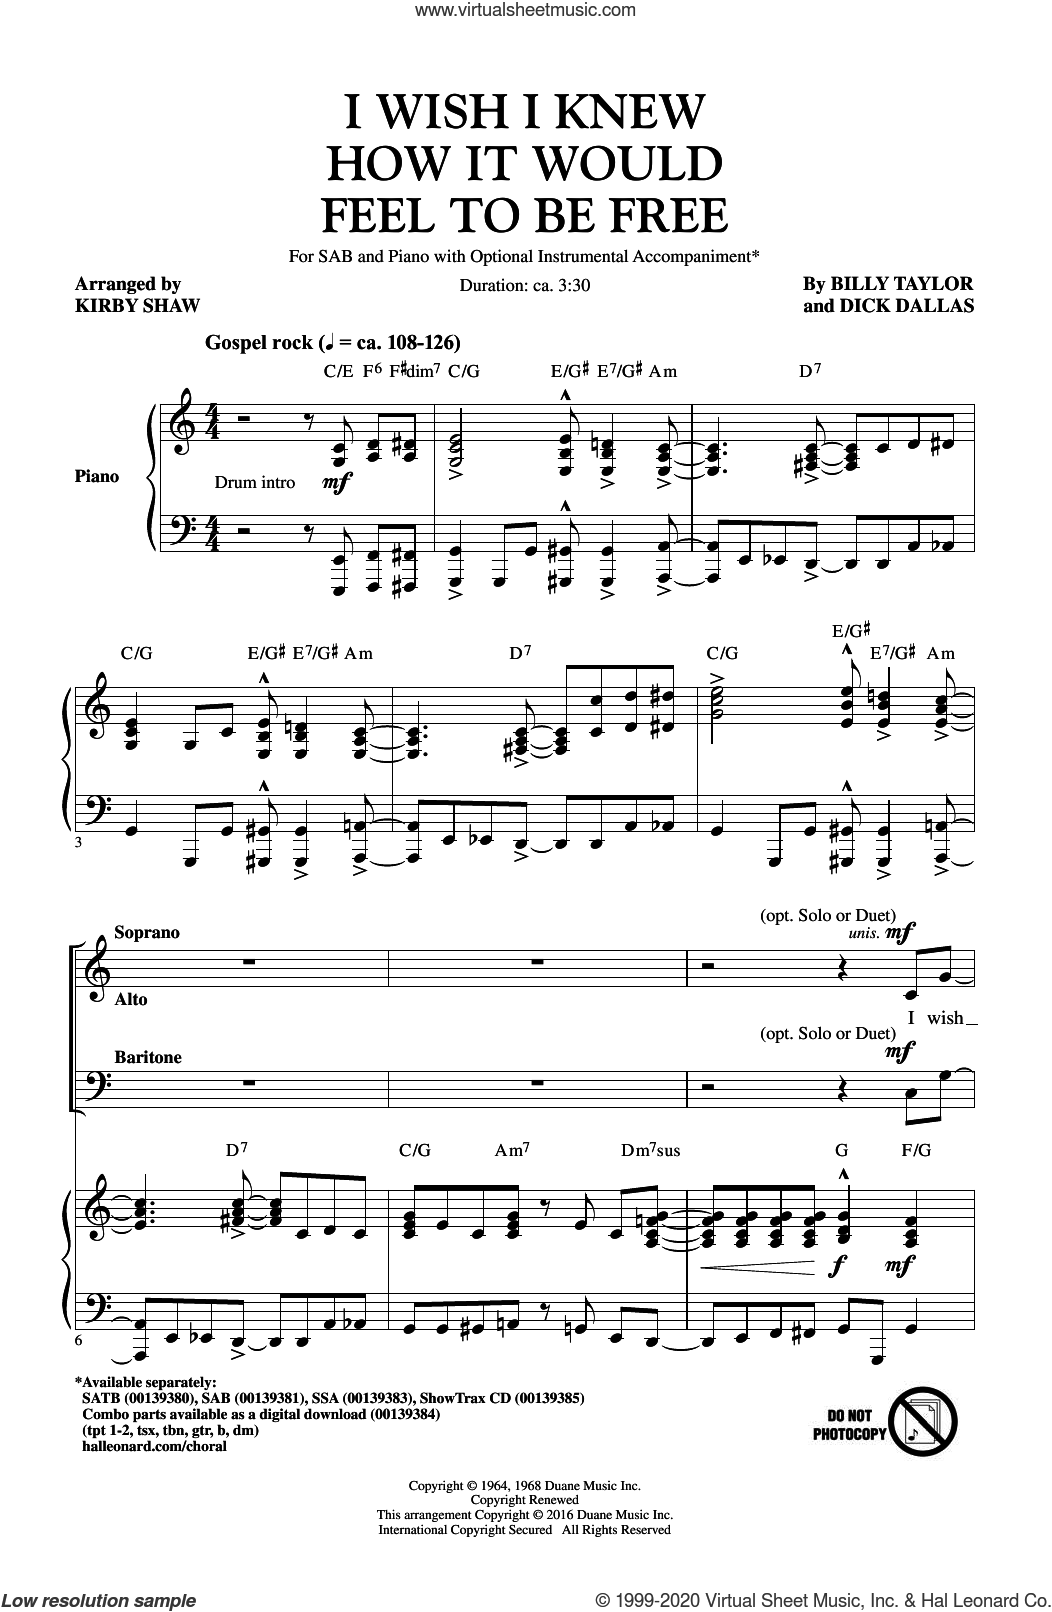 I Wish I Knew How It Would Feel To Be Free sheet music for choir (SAB: soprano, alto, bass) by Billy Taylor, Kirby Shaw and Dick Dallas, intermediate skill level